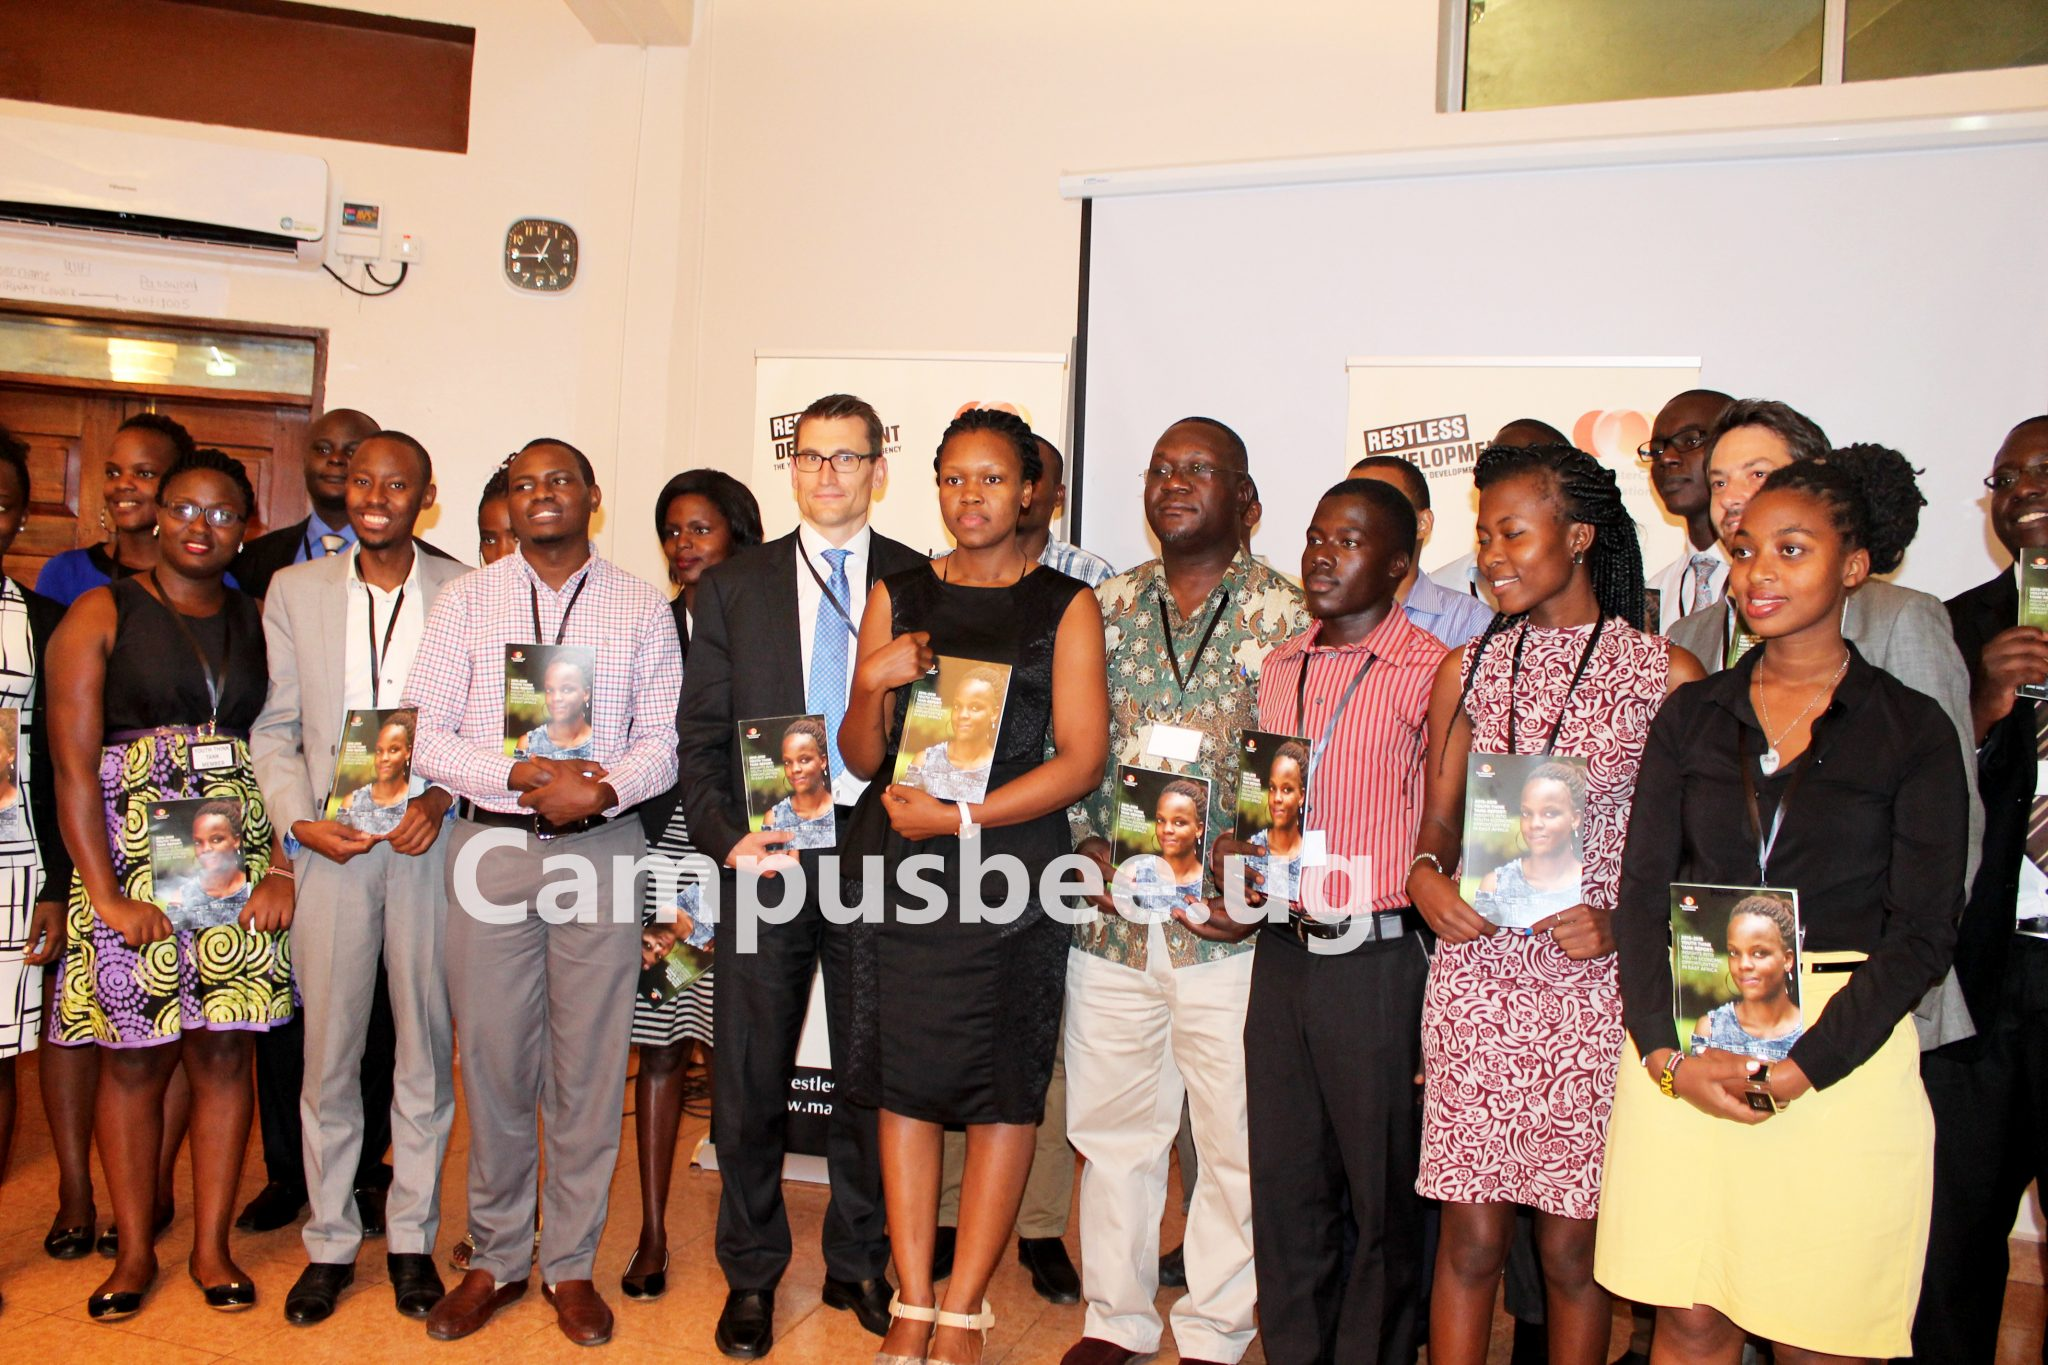 A group photo involving the Restless Development and MasterCard foundation members